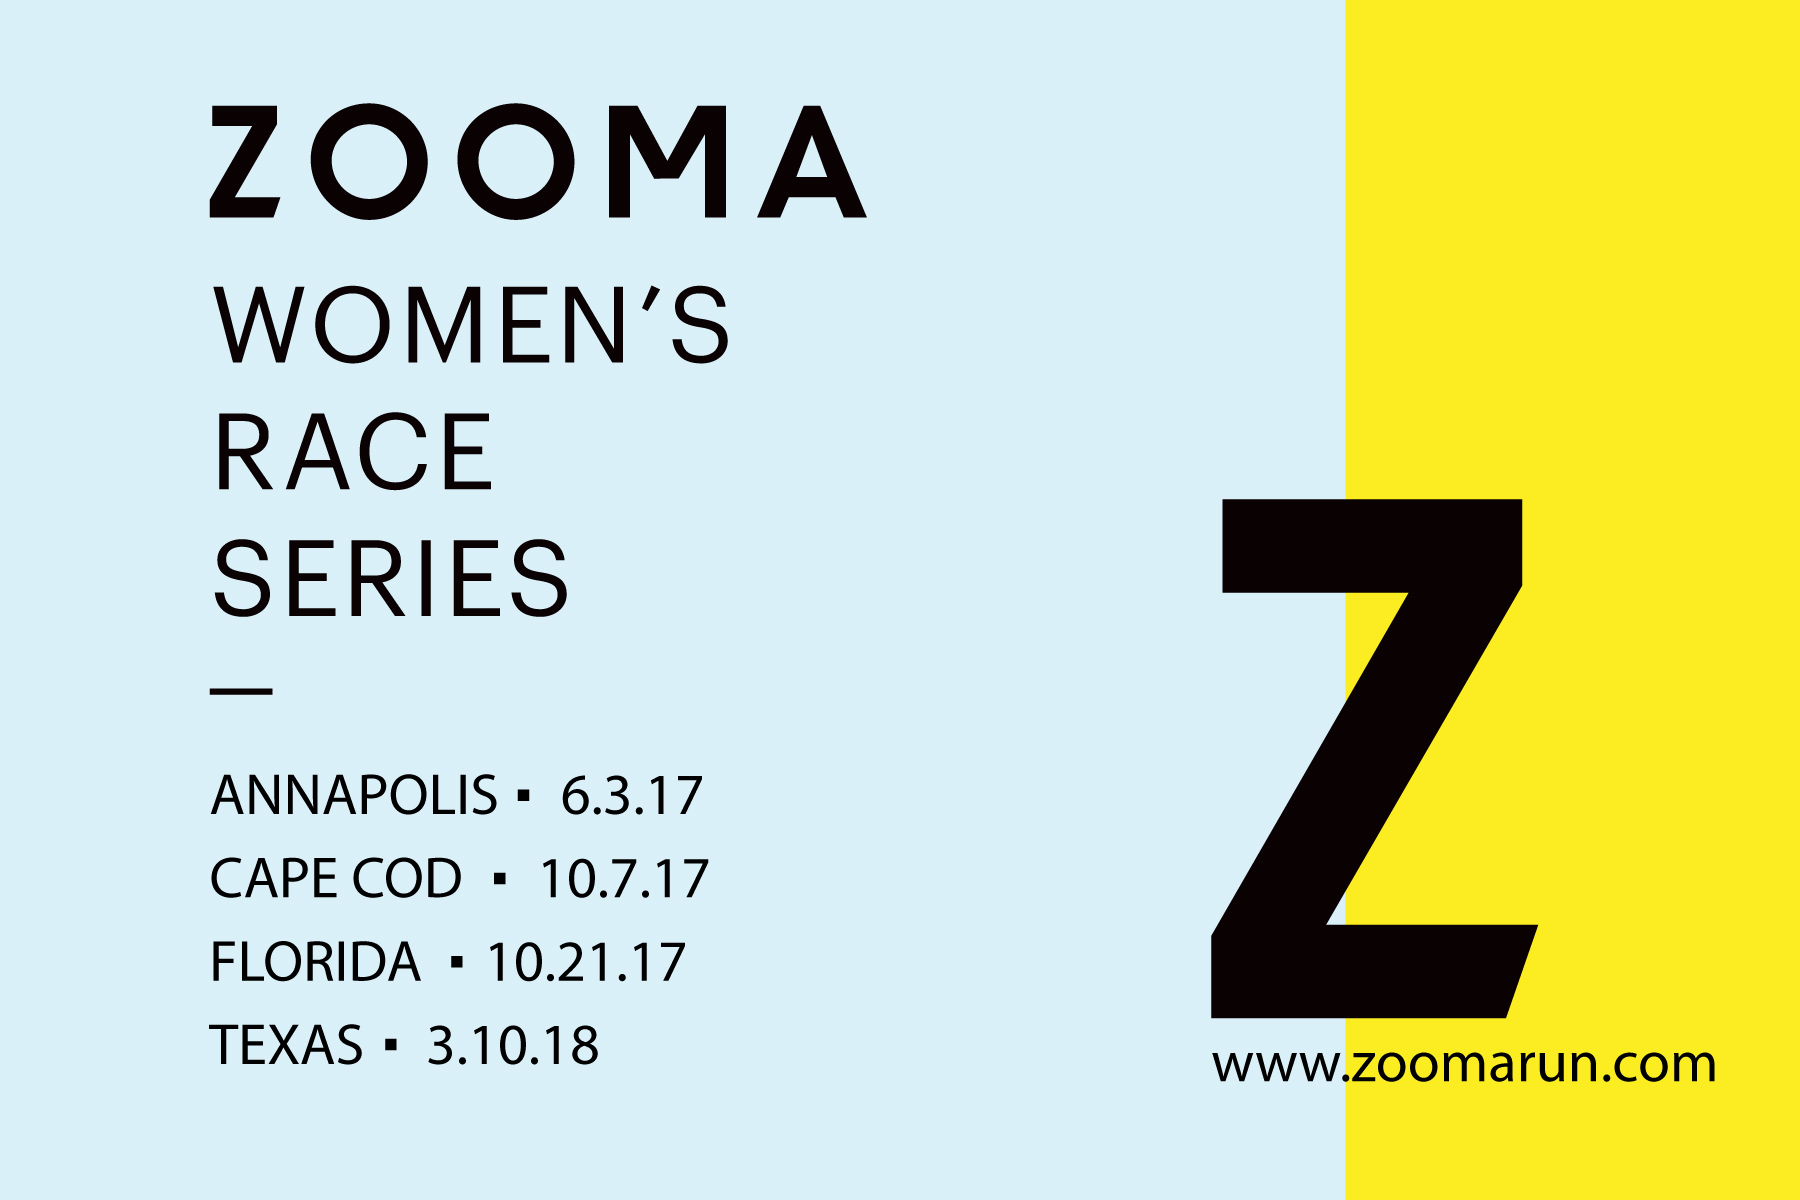 Zooma Women's Race Series